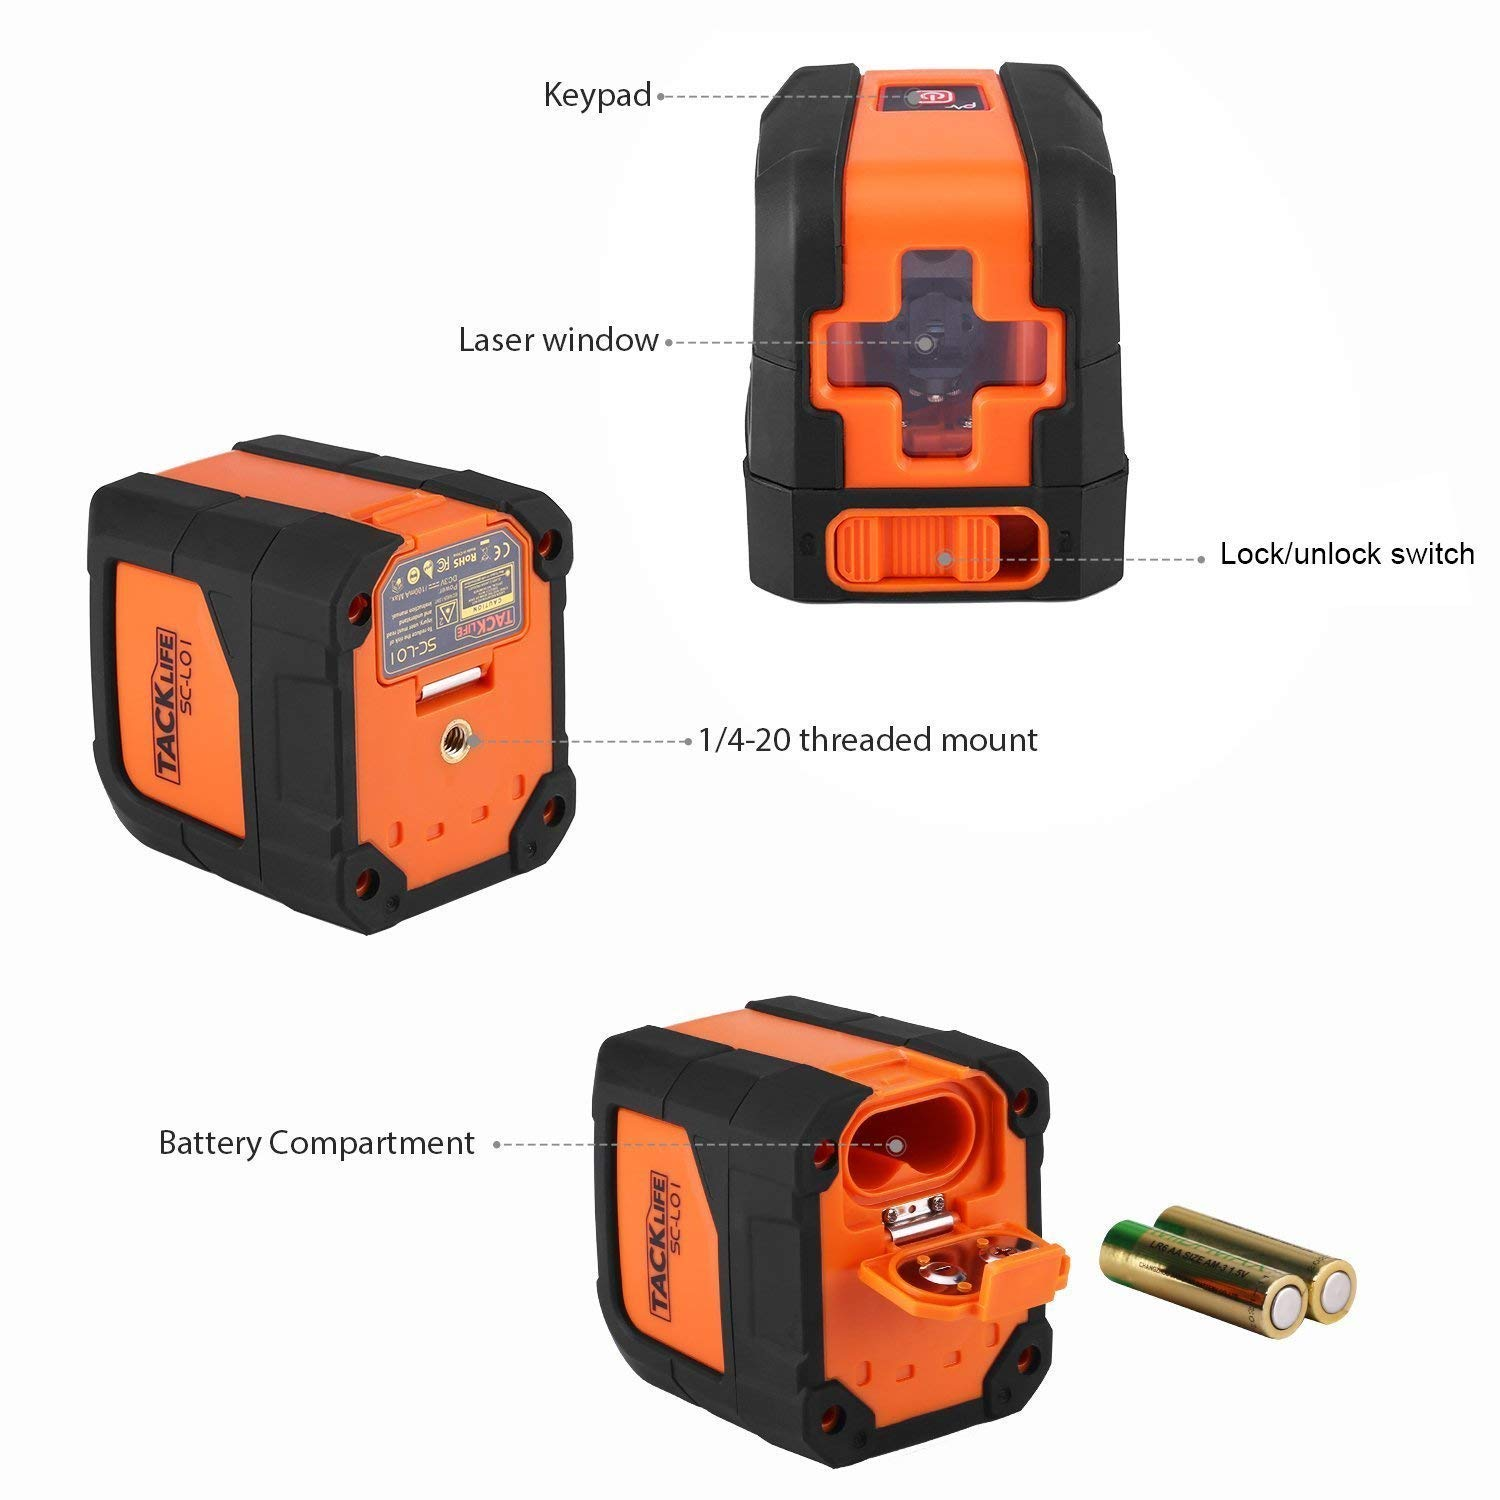 Tacklife SC-L01-50 Feet Laser Level Self-Leveling Horizontal and Vertical Cross-Line Laser - Magnetic Mount Base and Carrying Pouch, Battery Included by TACKLIFE (Image #3)